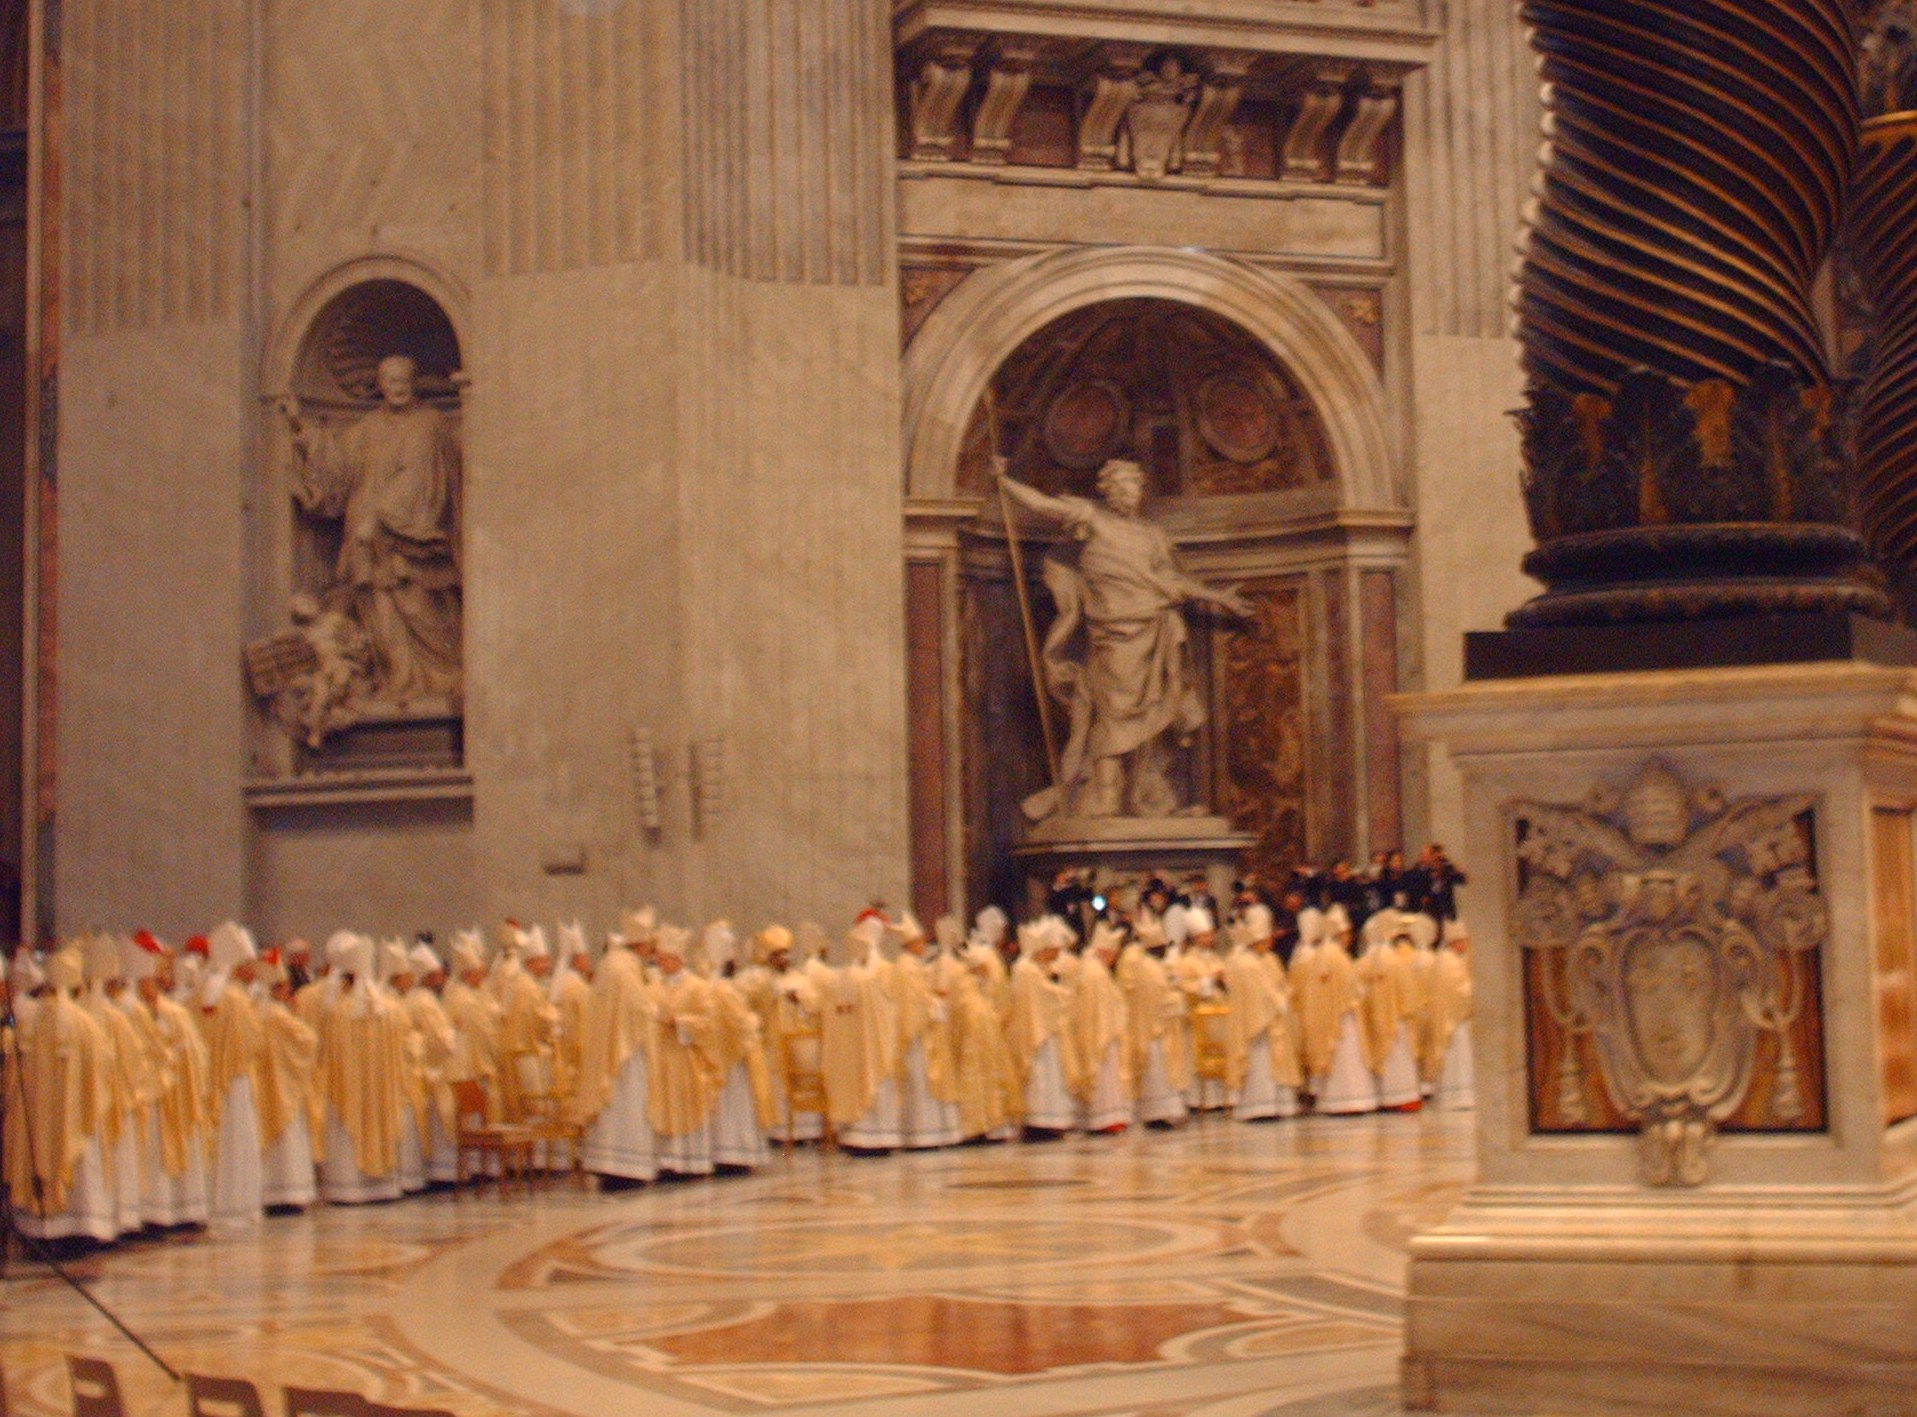 Bishops file out of St. Peter's Basilica as the Synod of Bishops concludes.